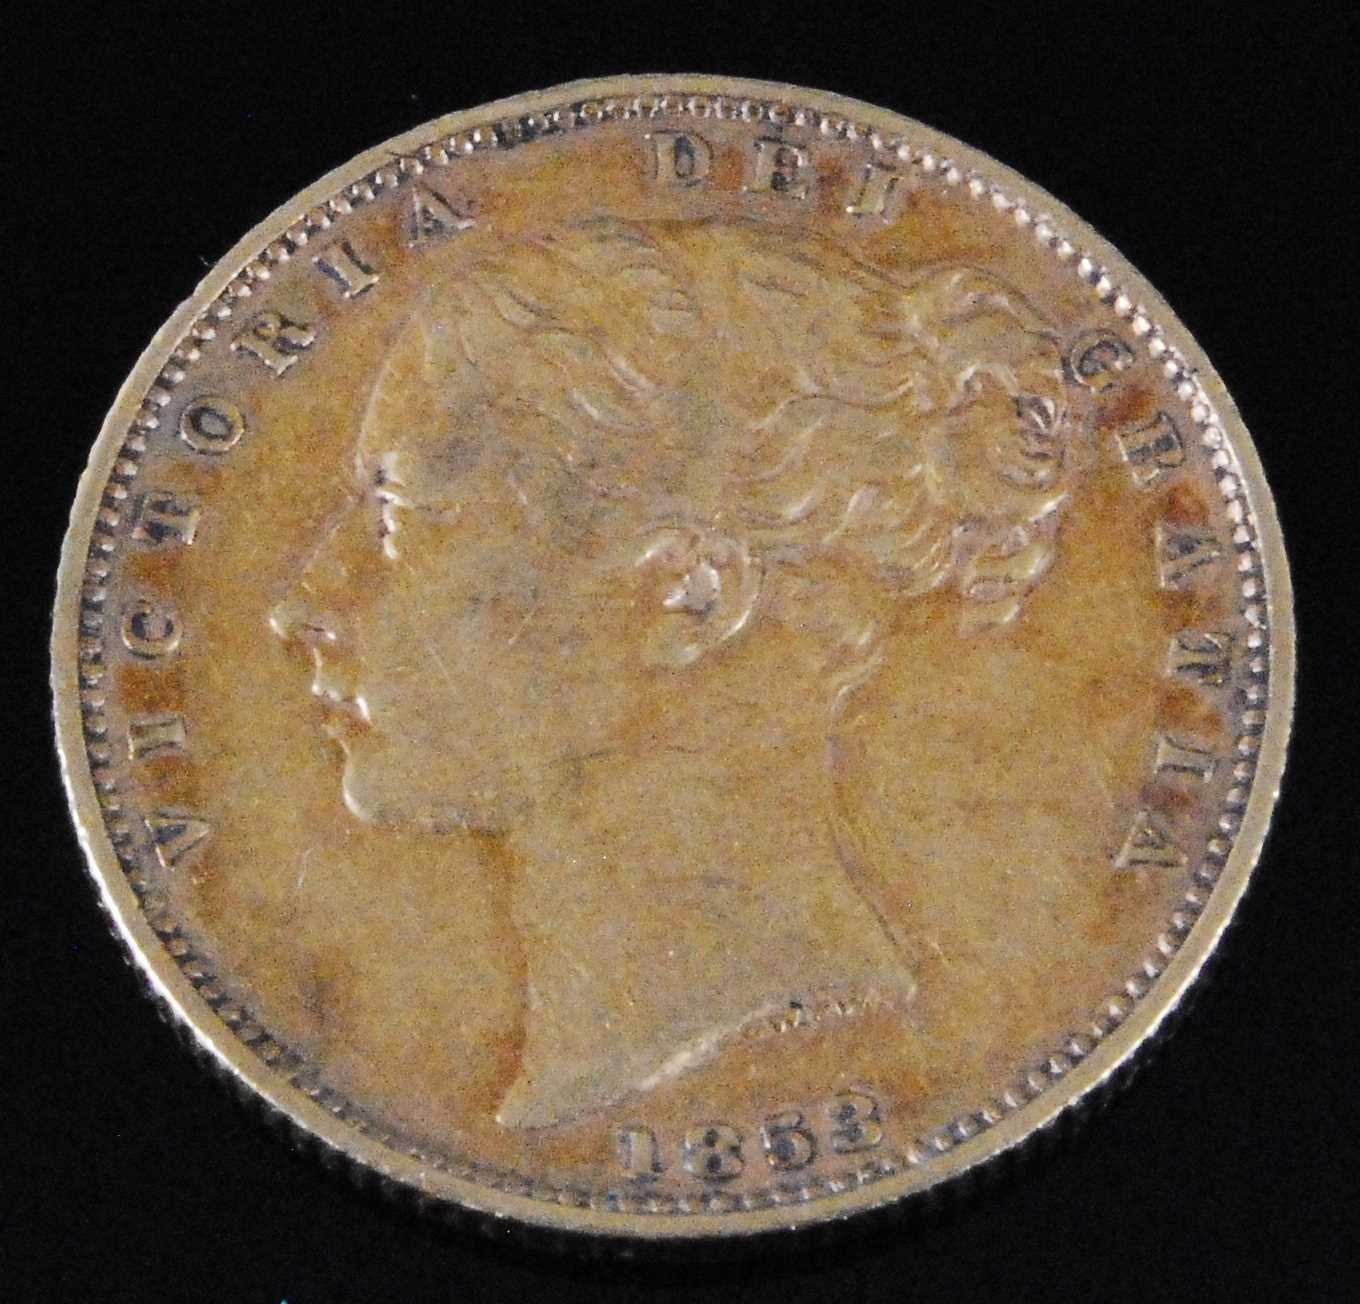 Lot 2055-Great Britain, 1853 gold full sovereign